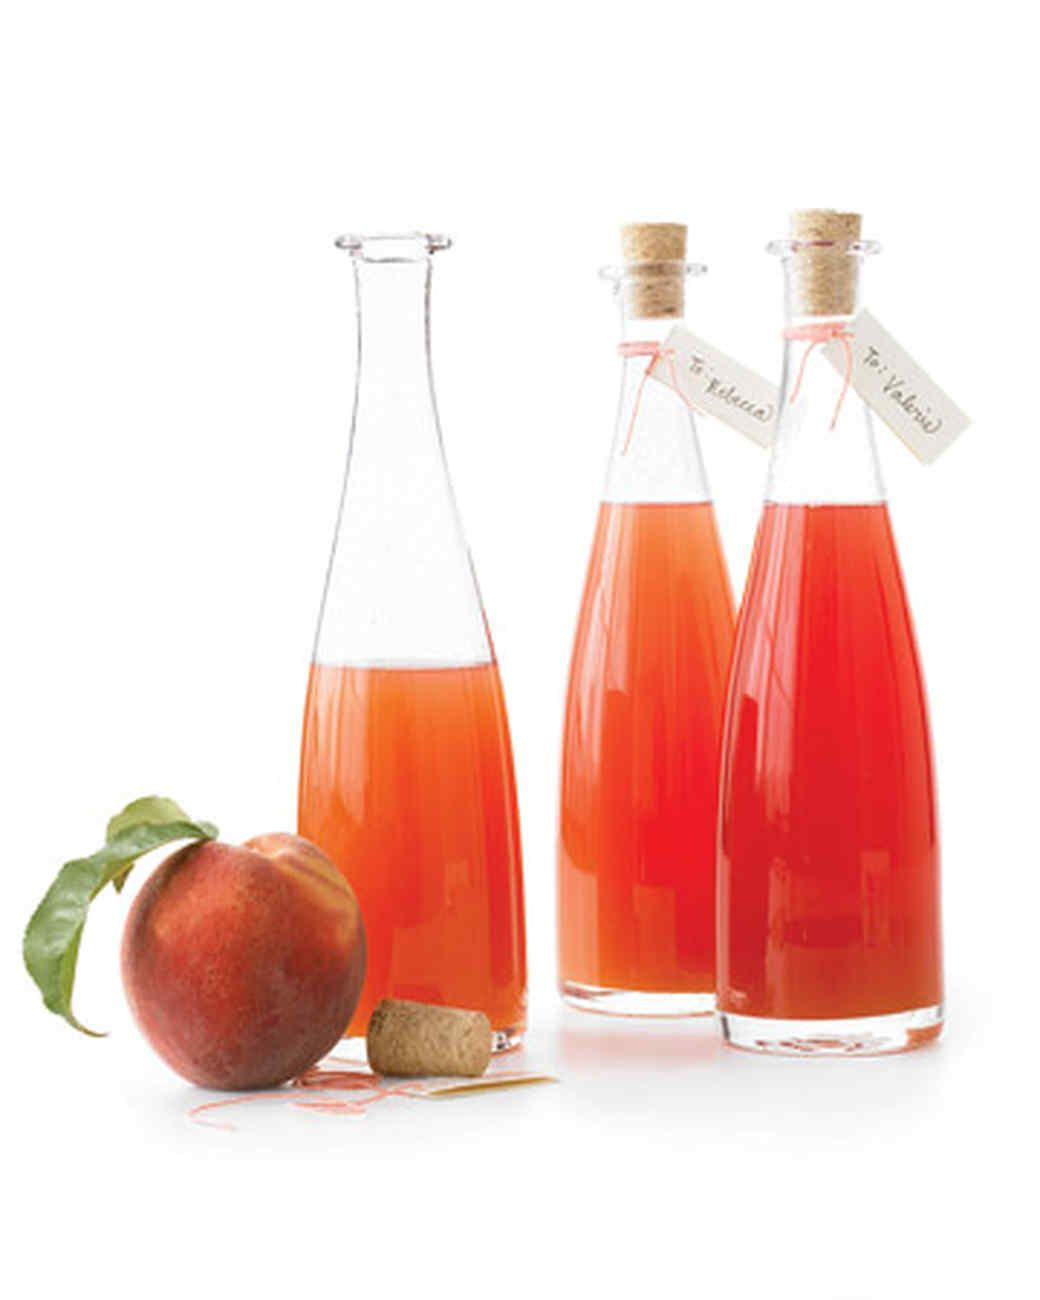 Fresh Peach Infused Vinegar Recipe With Images Infused Vinegar Recipe Peach Recipe Infused Vinegars